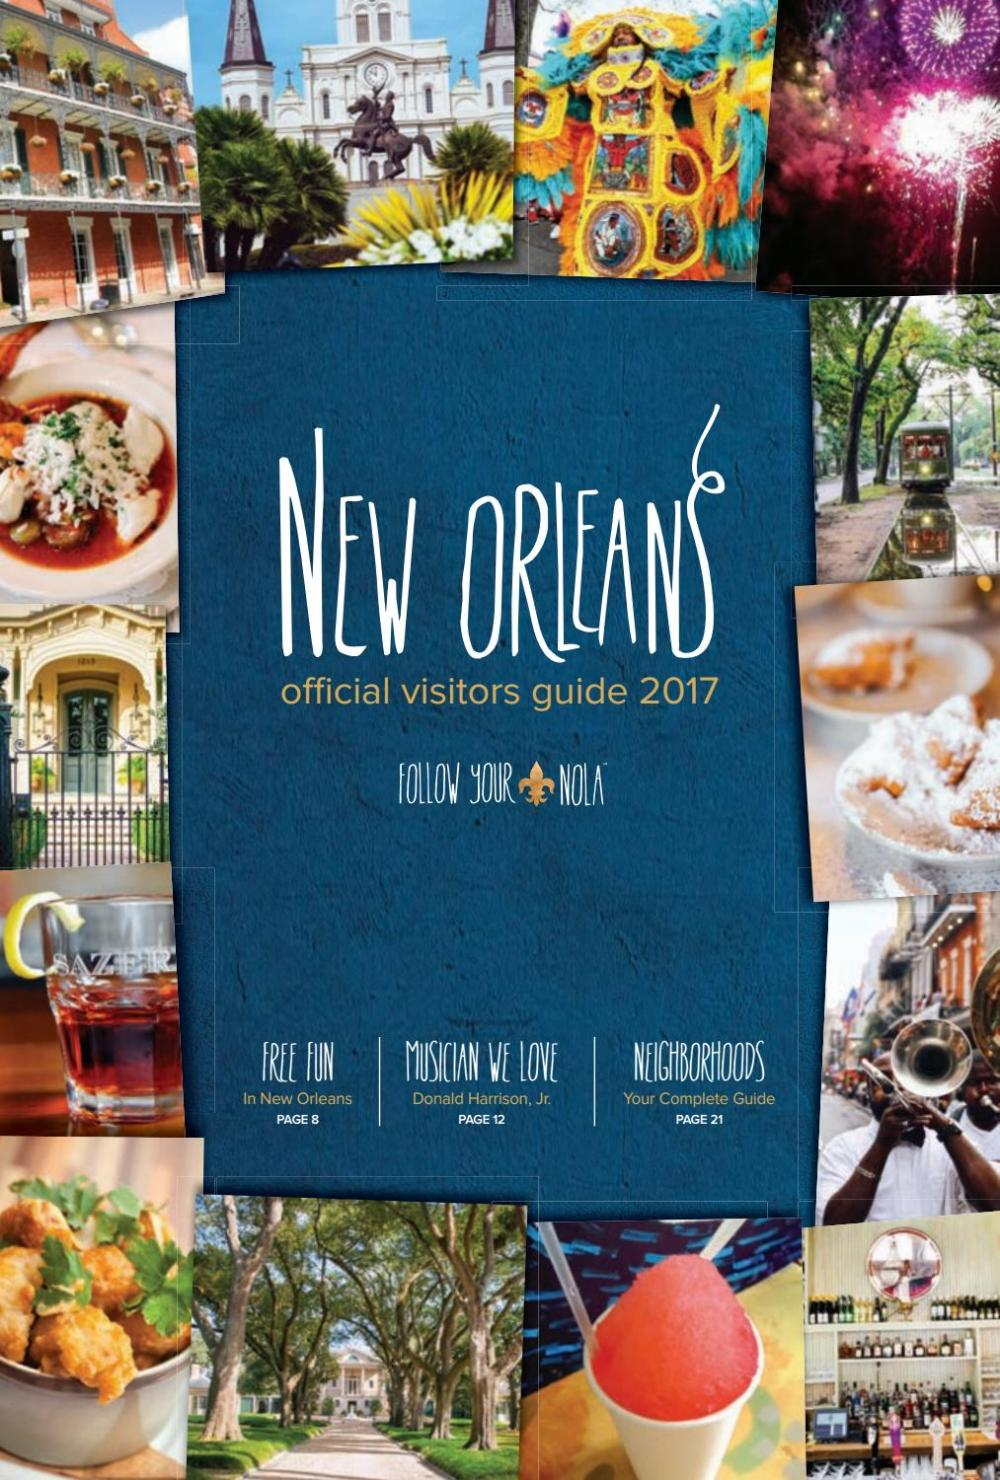 medium resolution of new orleans visitors guide 2017 july dec by new orleans tourism issuu